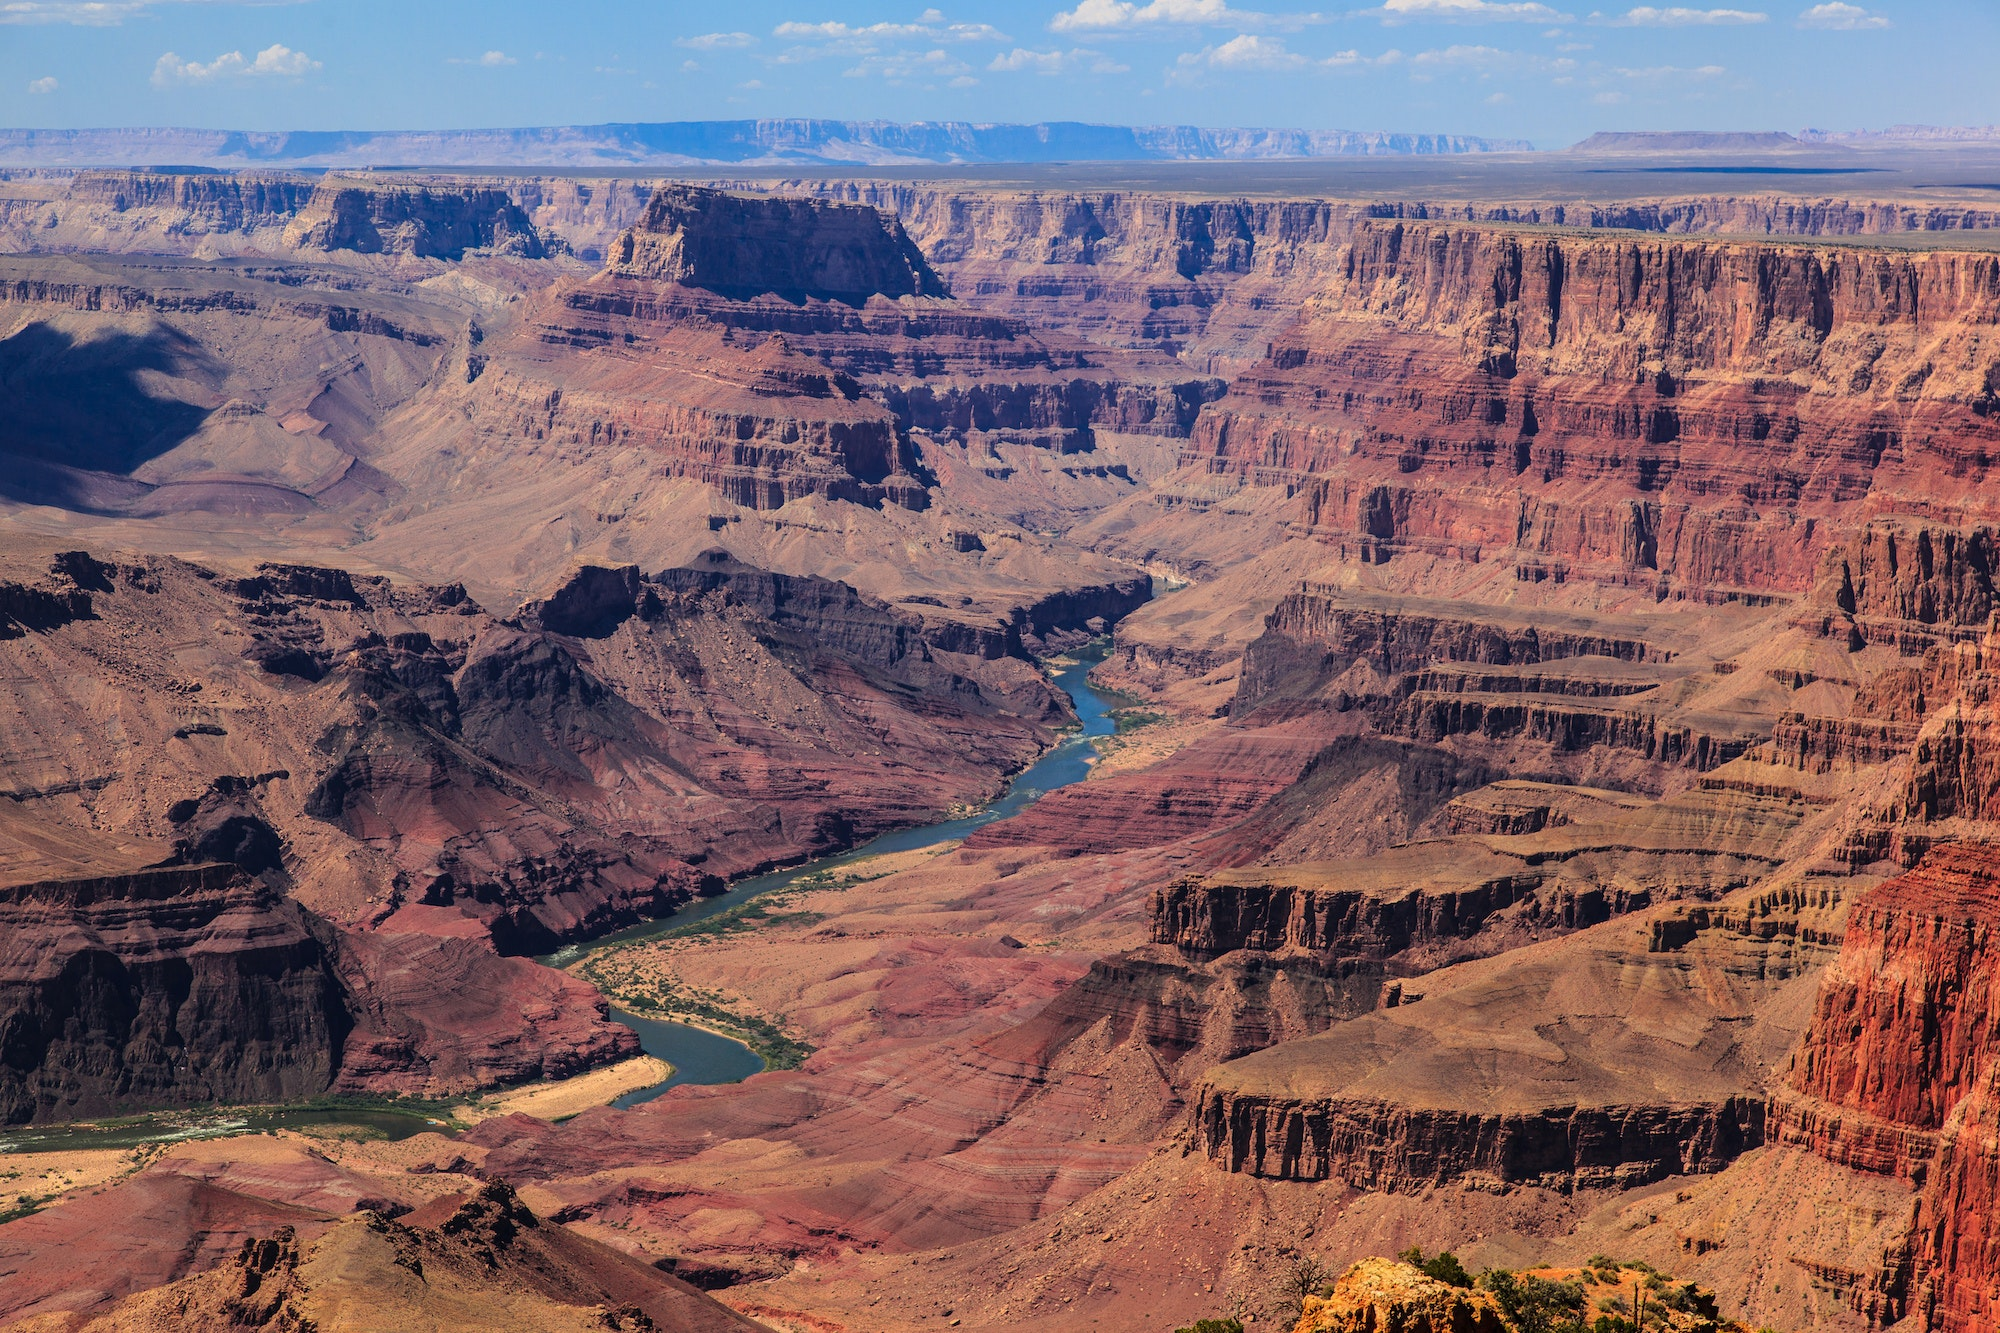 The Grand Canyon is 277 miles long, up to 18 miles wide, and more than a mile deep.